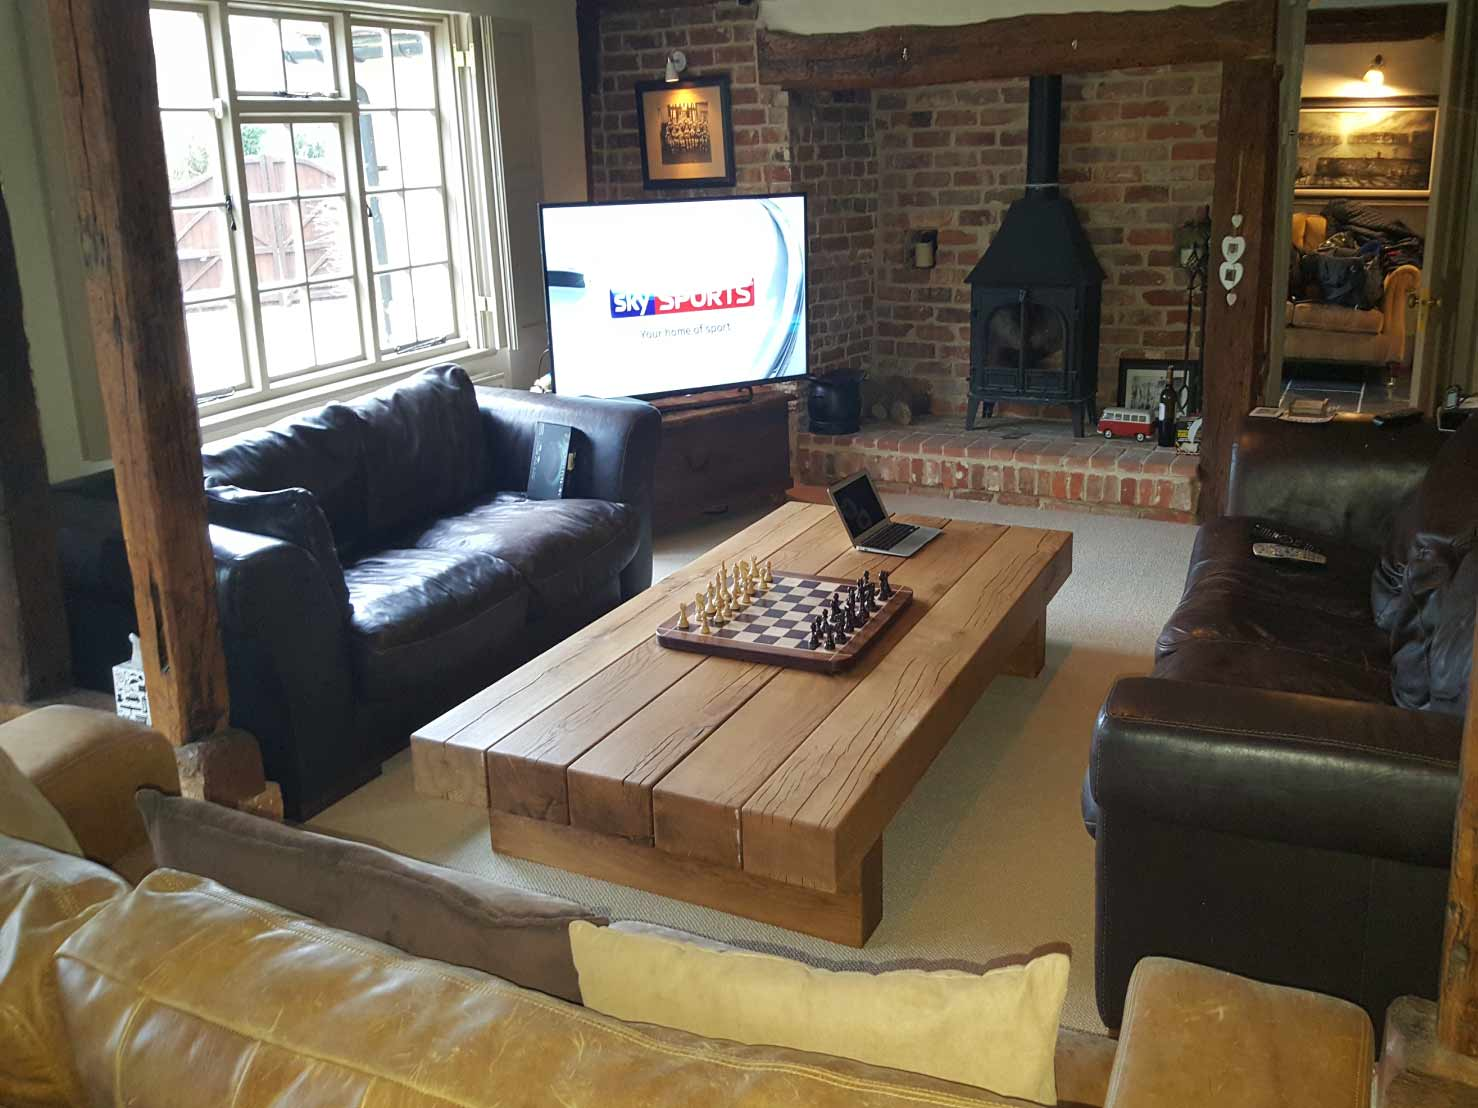 rustic-oak-beam-coffee-table-from-abacus-tables-arabica-2m-x-1.1m--project-334